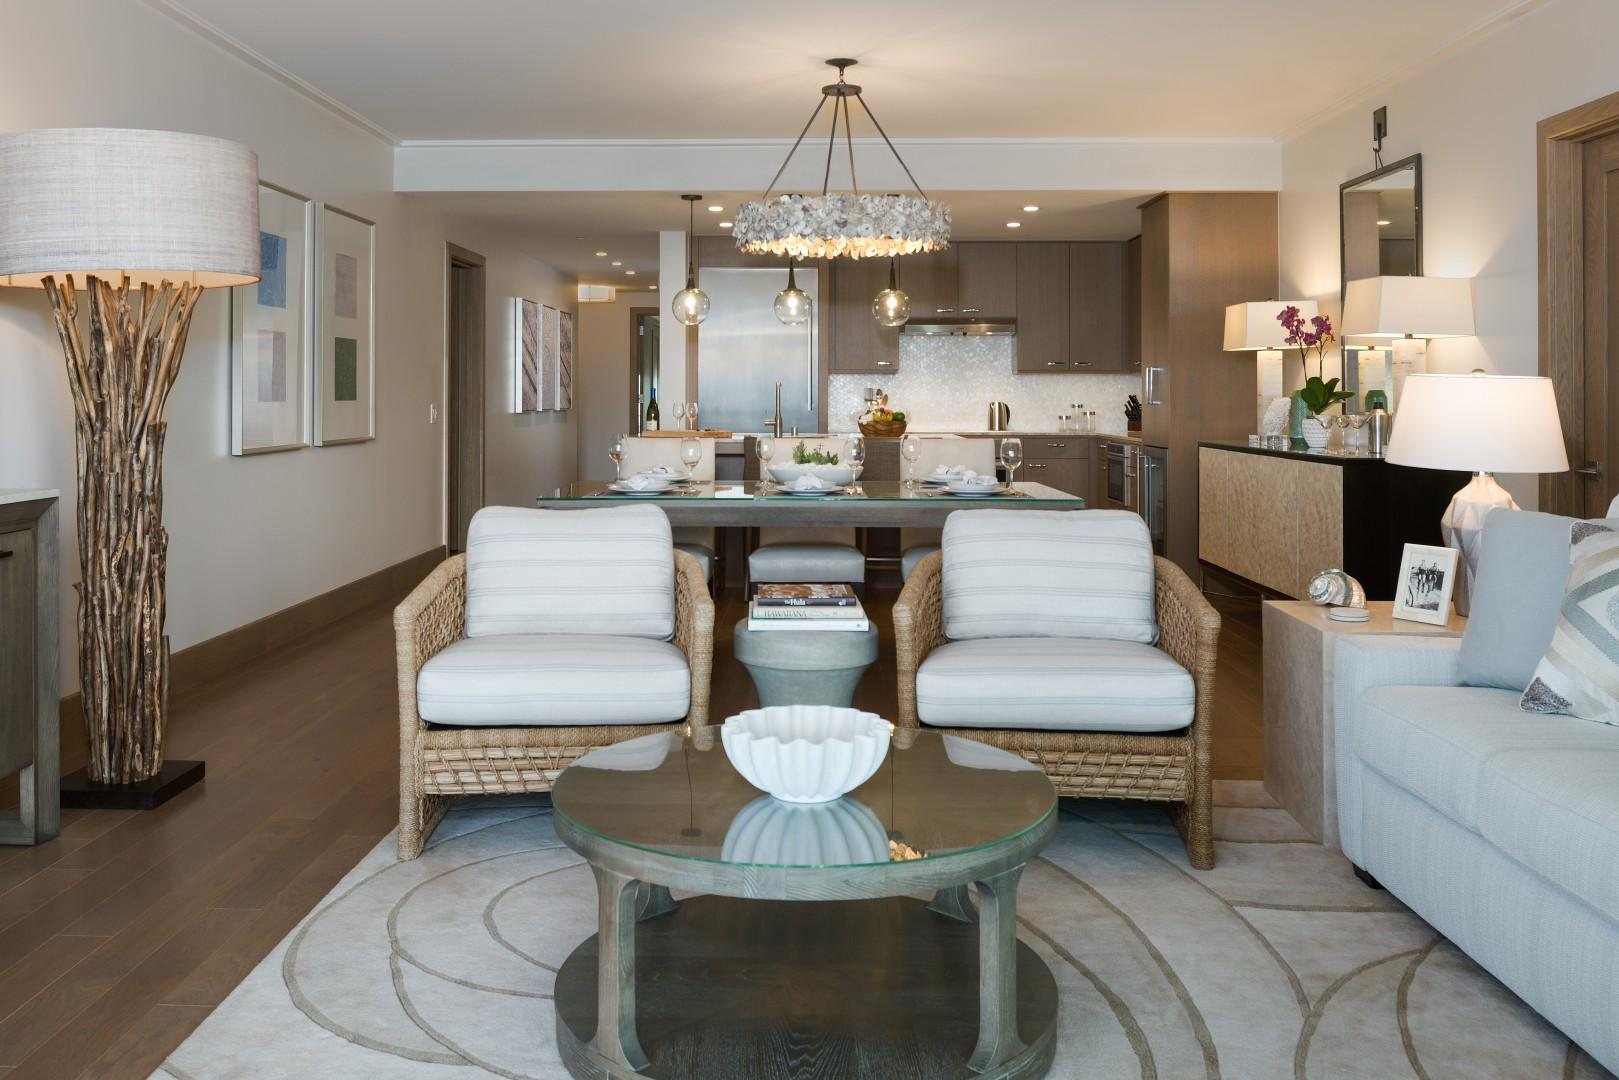 Open-concept living spaces with elegant furnishings allow for total comfort at Hokuala.